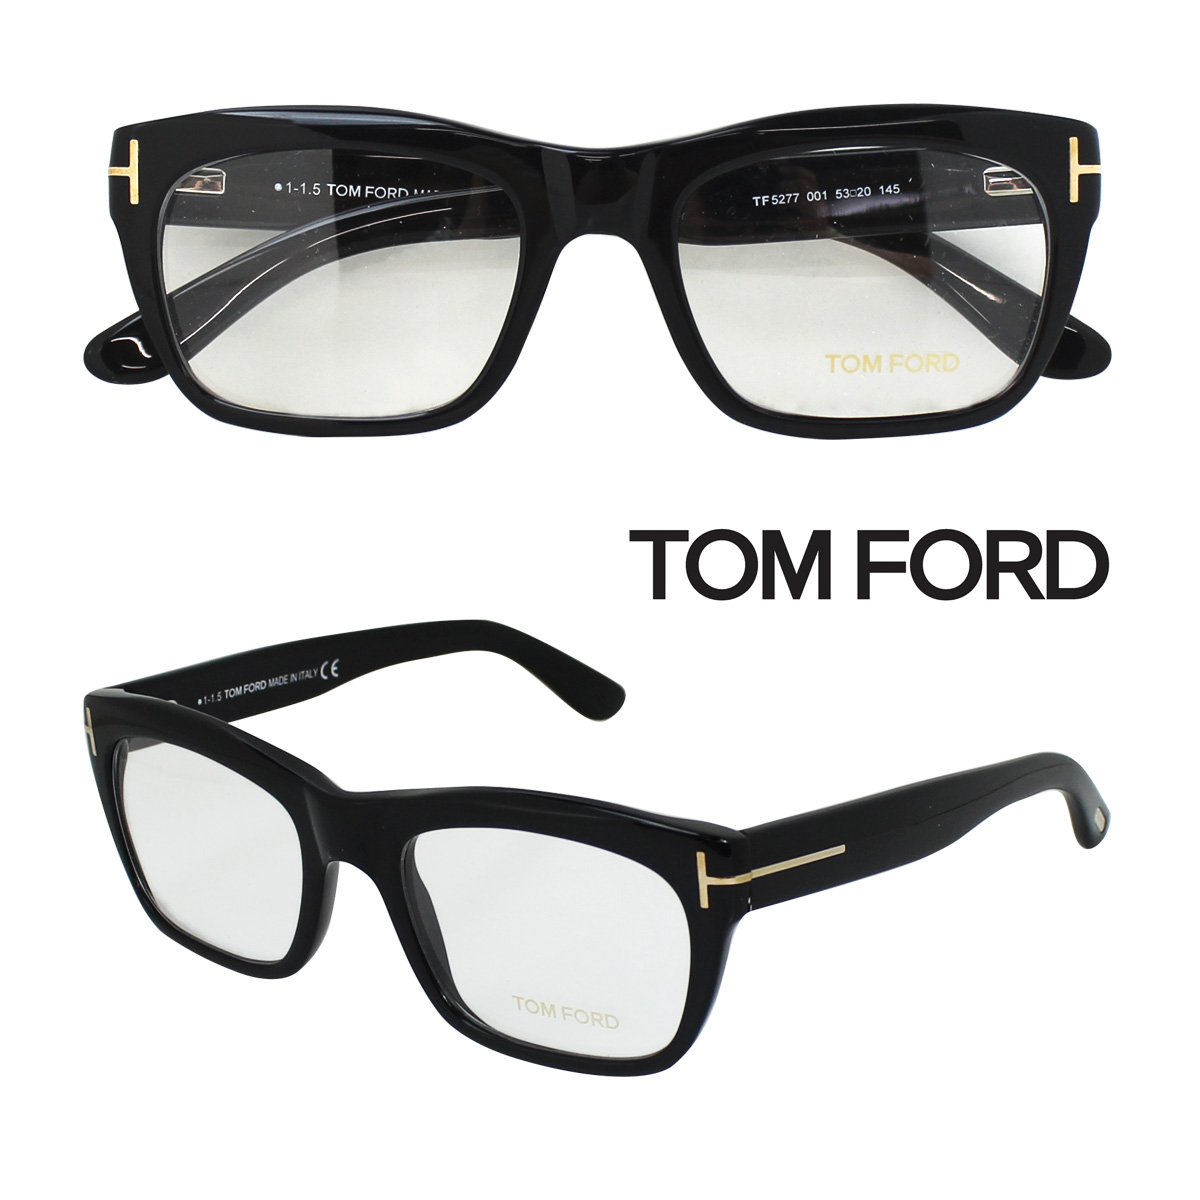 5253b4770a97 Whats up Sports   SOLD OUT  Tom Ford TOM FORD eyeglasses eyewear ...